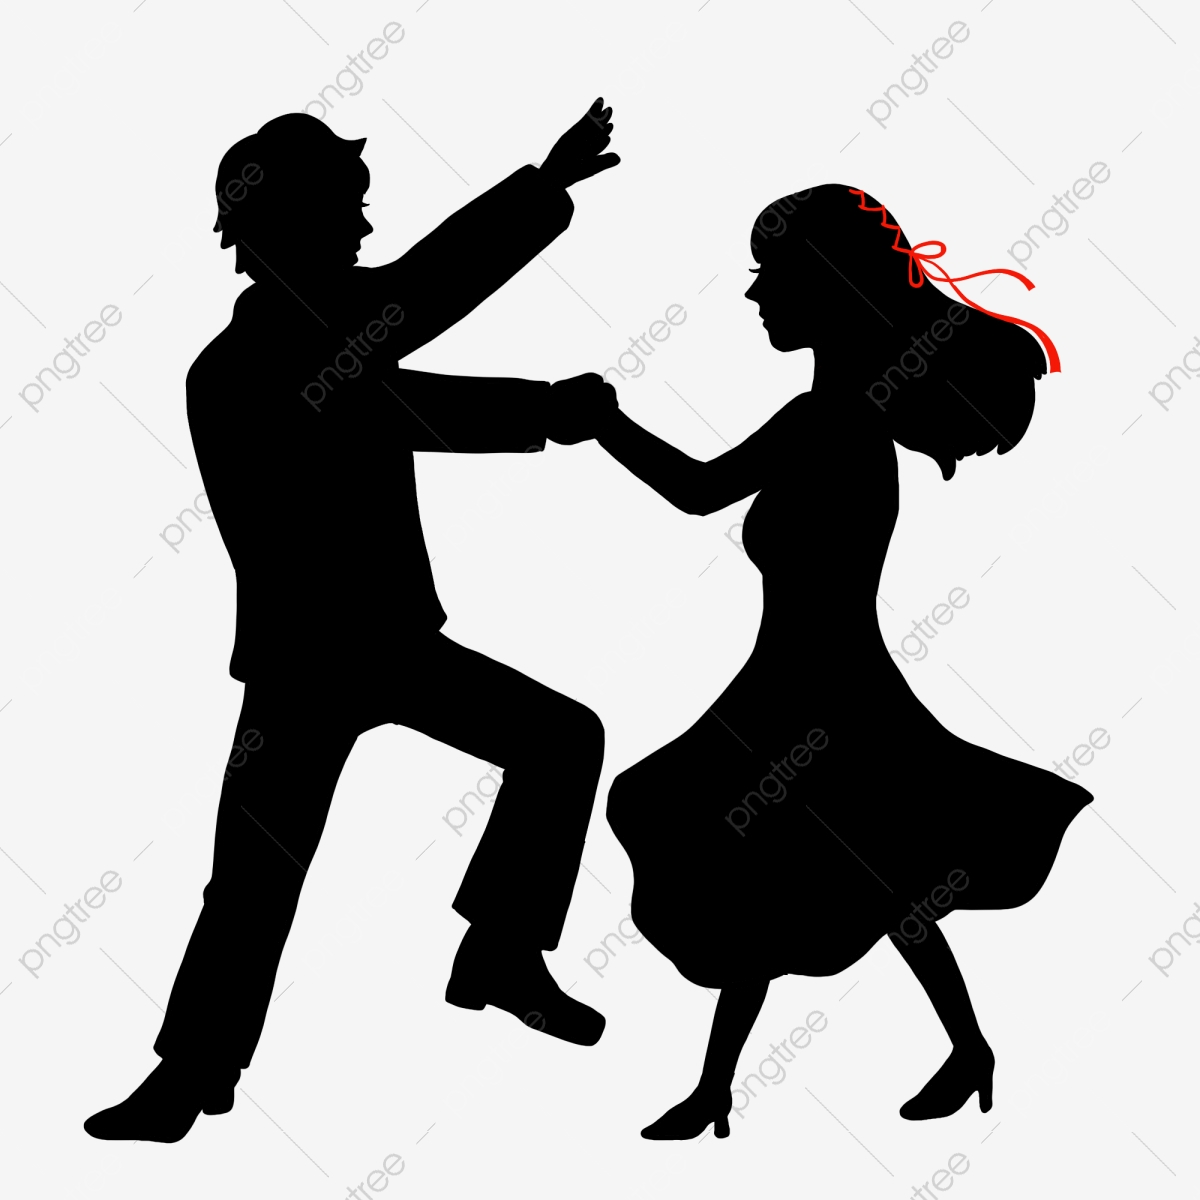 Men And Women Dancing Silhouette Illustration Free Element Download Male And Female Dance National Standard Social Dance Png Transparent Clipart Image And Psd File For Free Download